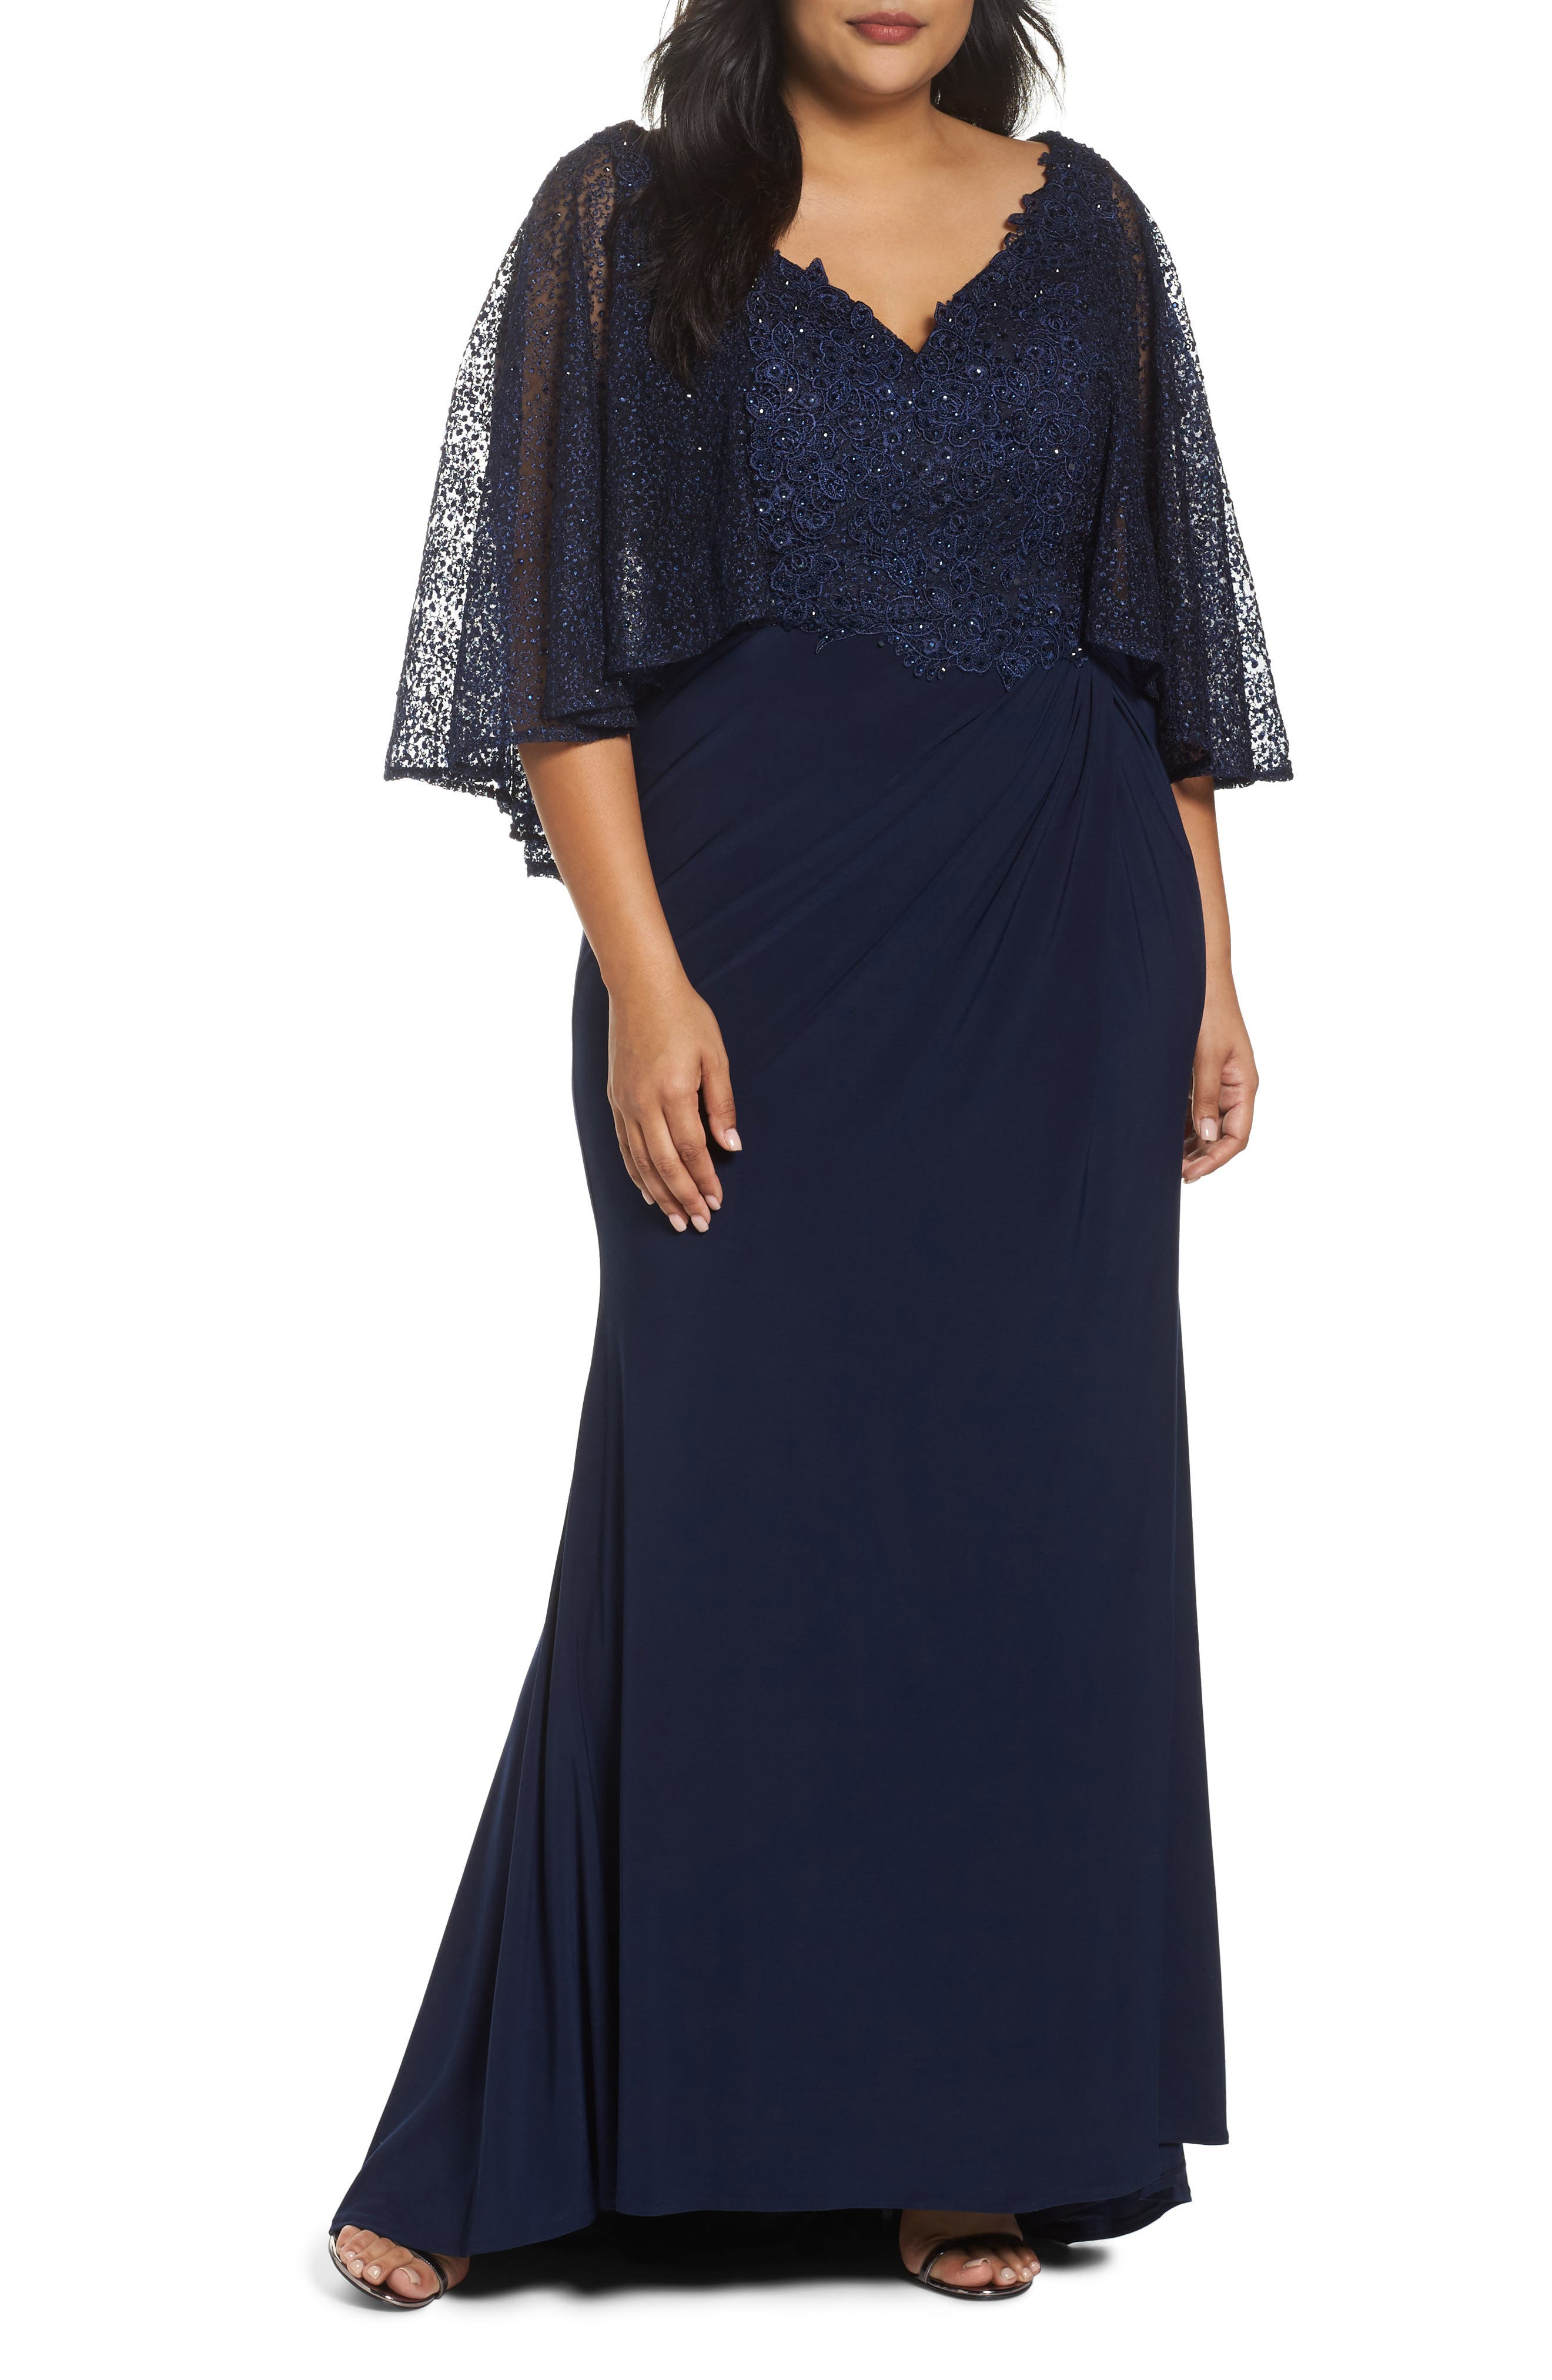 1930s Outfit Ideas for Women Plus Size Womens MAC Duggal Lace Capelet Column Gown Size 20W - Blue $538.00 AT vintagedancer.com